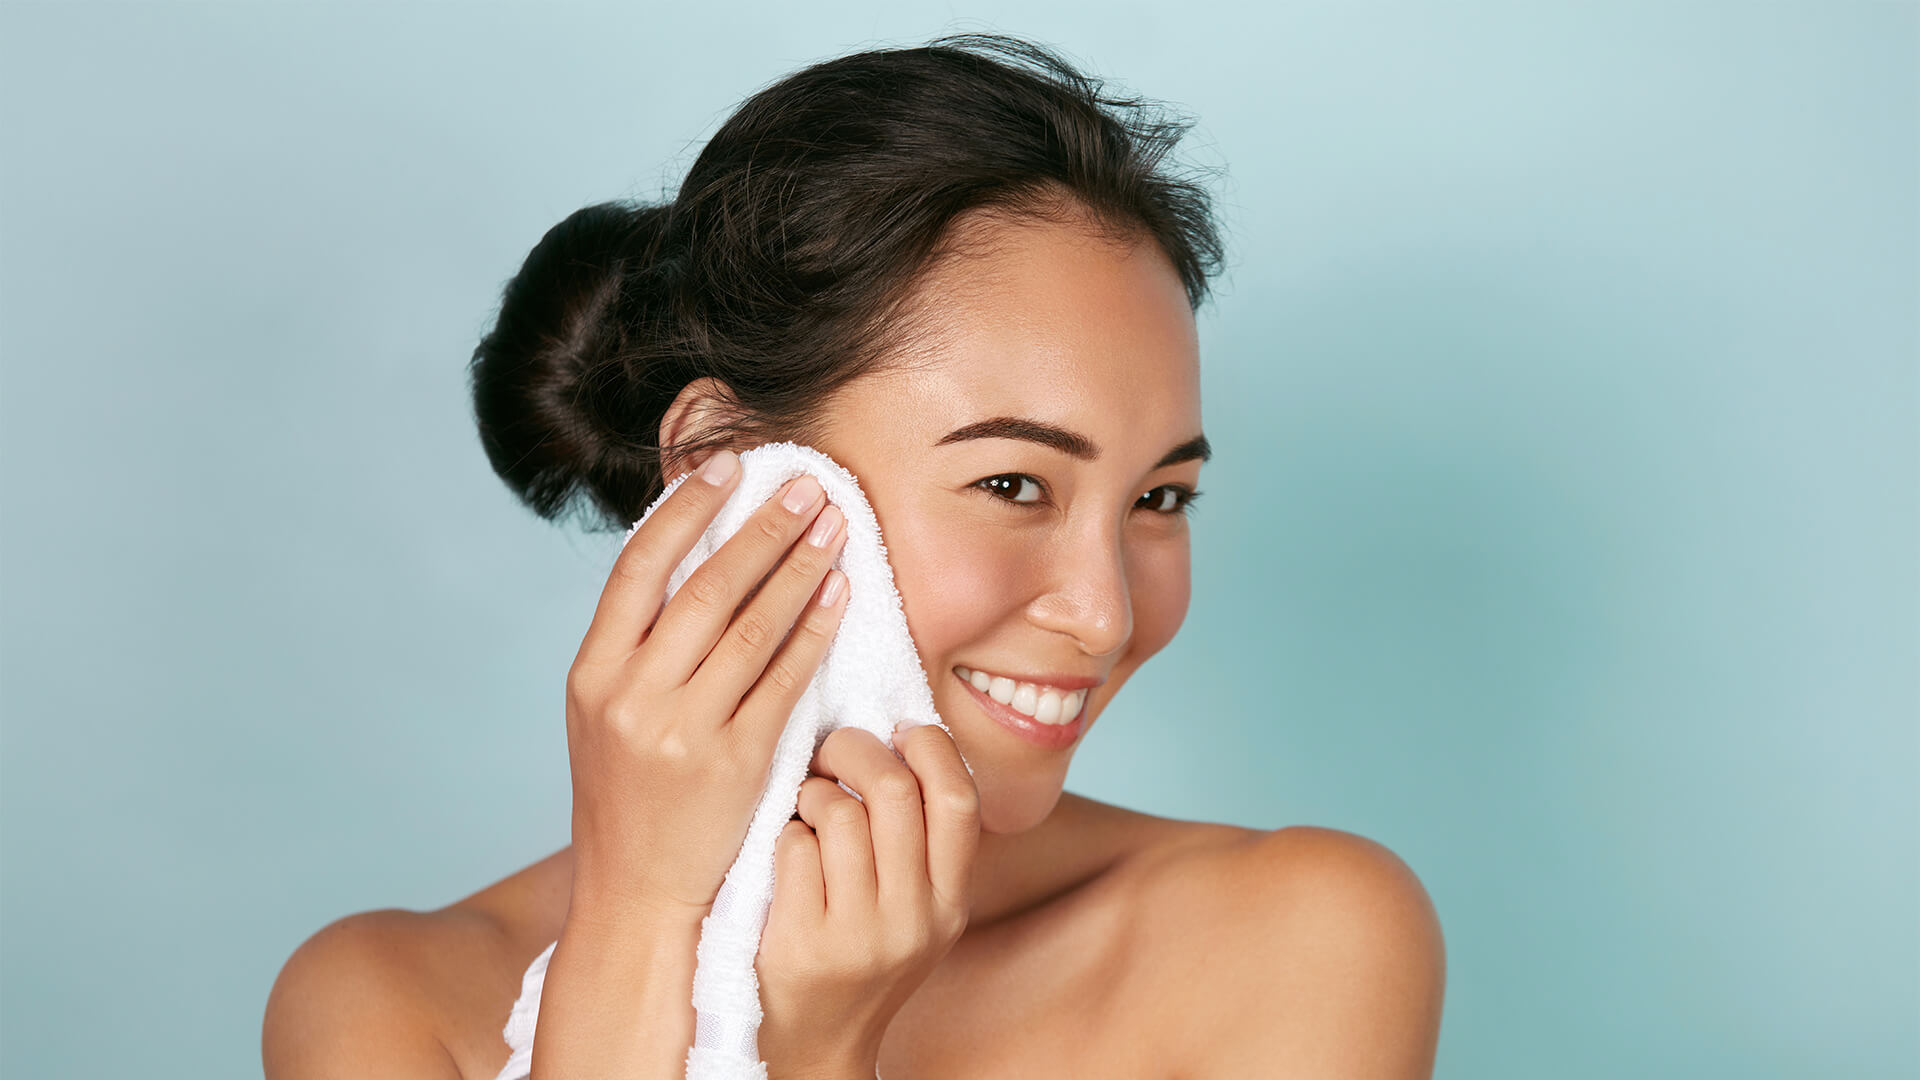 Gut Health & Glowing Skin: How Probiotics Can Help Your Skin